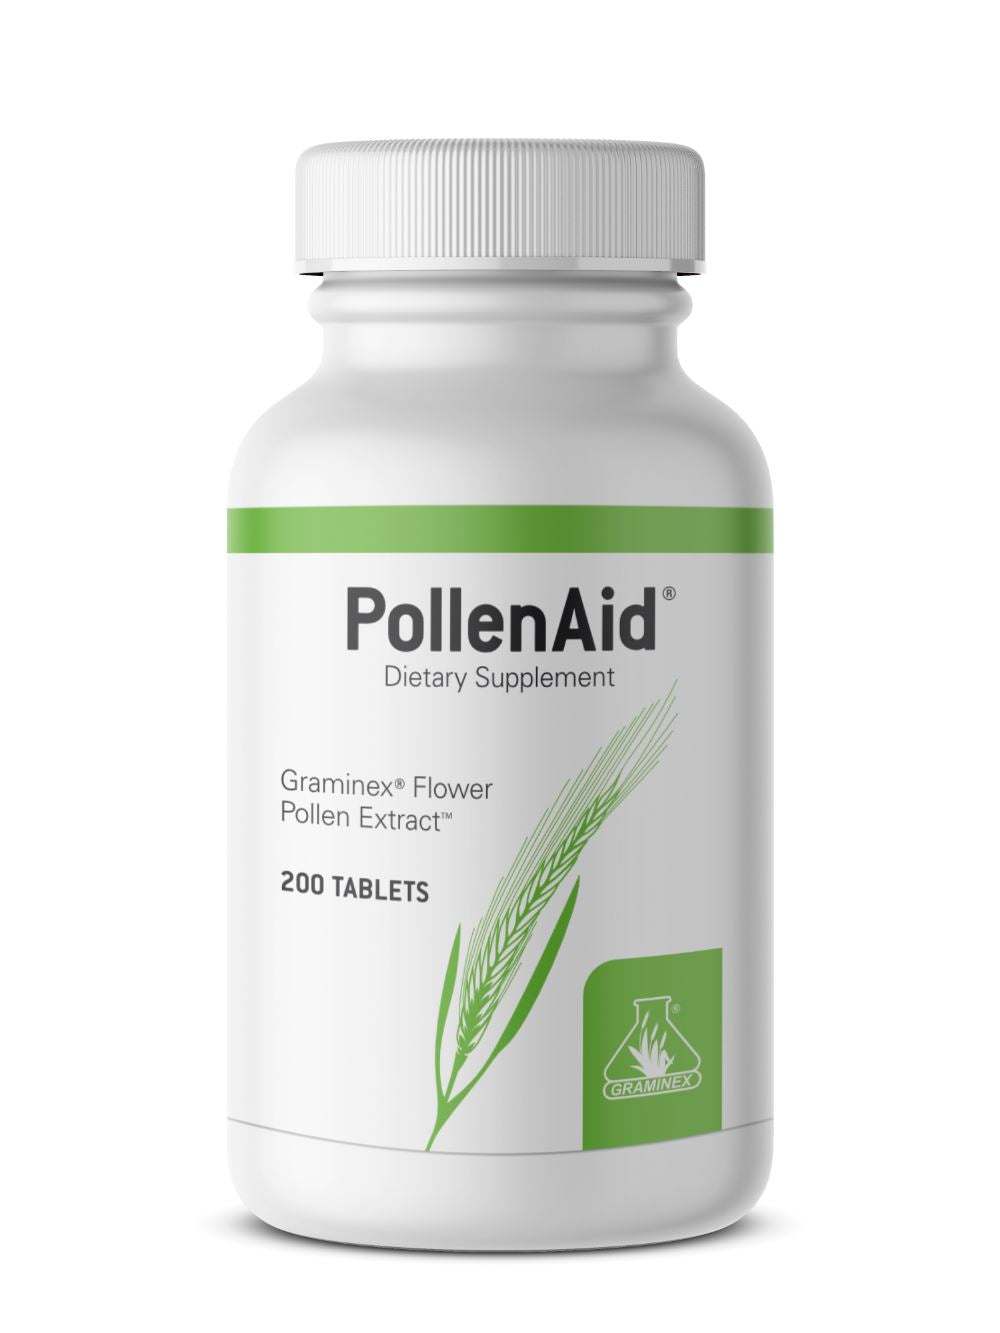 PollenAid Prostate Health Support | Helps Relieve Pain and Control Urinary Flow - 200 Tablets